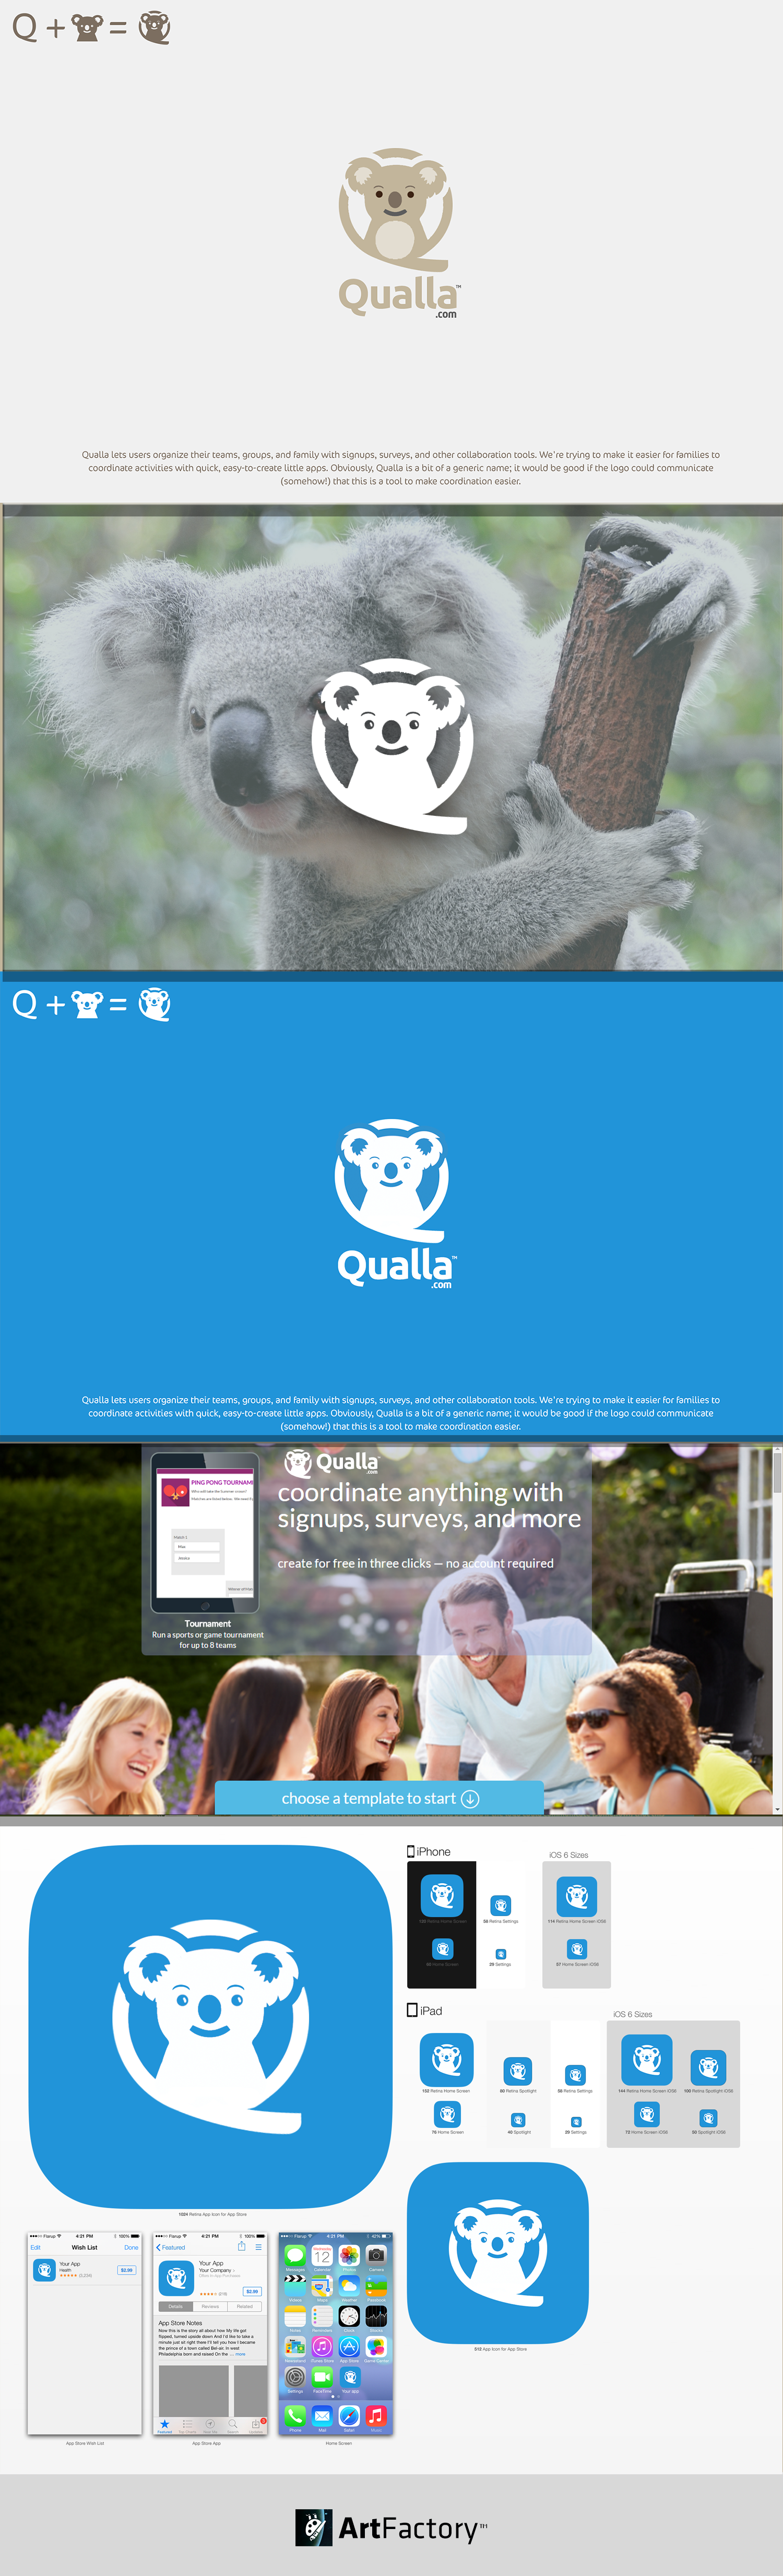 Create a great logo for Qualla -- collaboration tools for parents and more